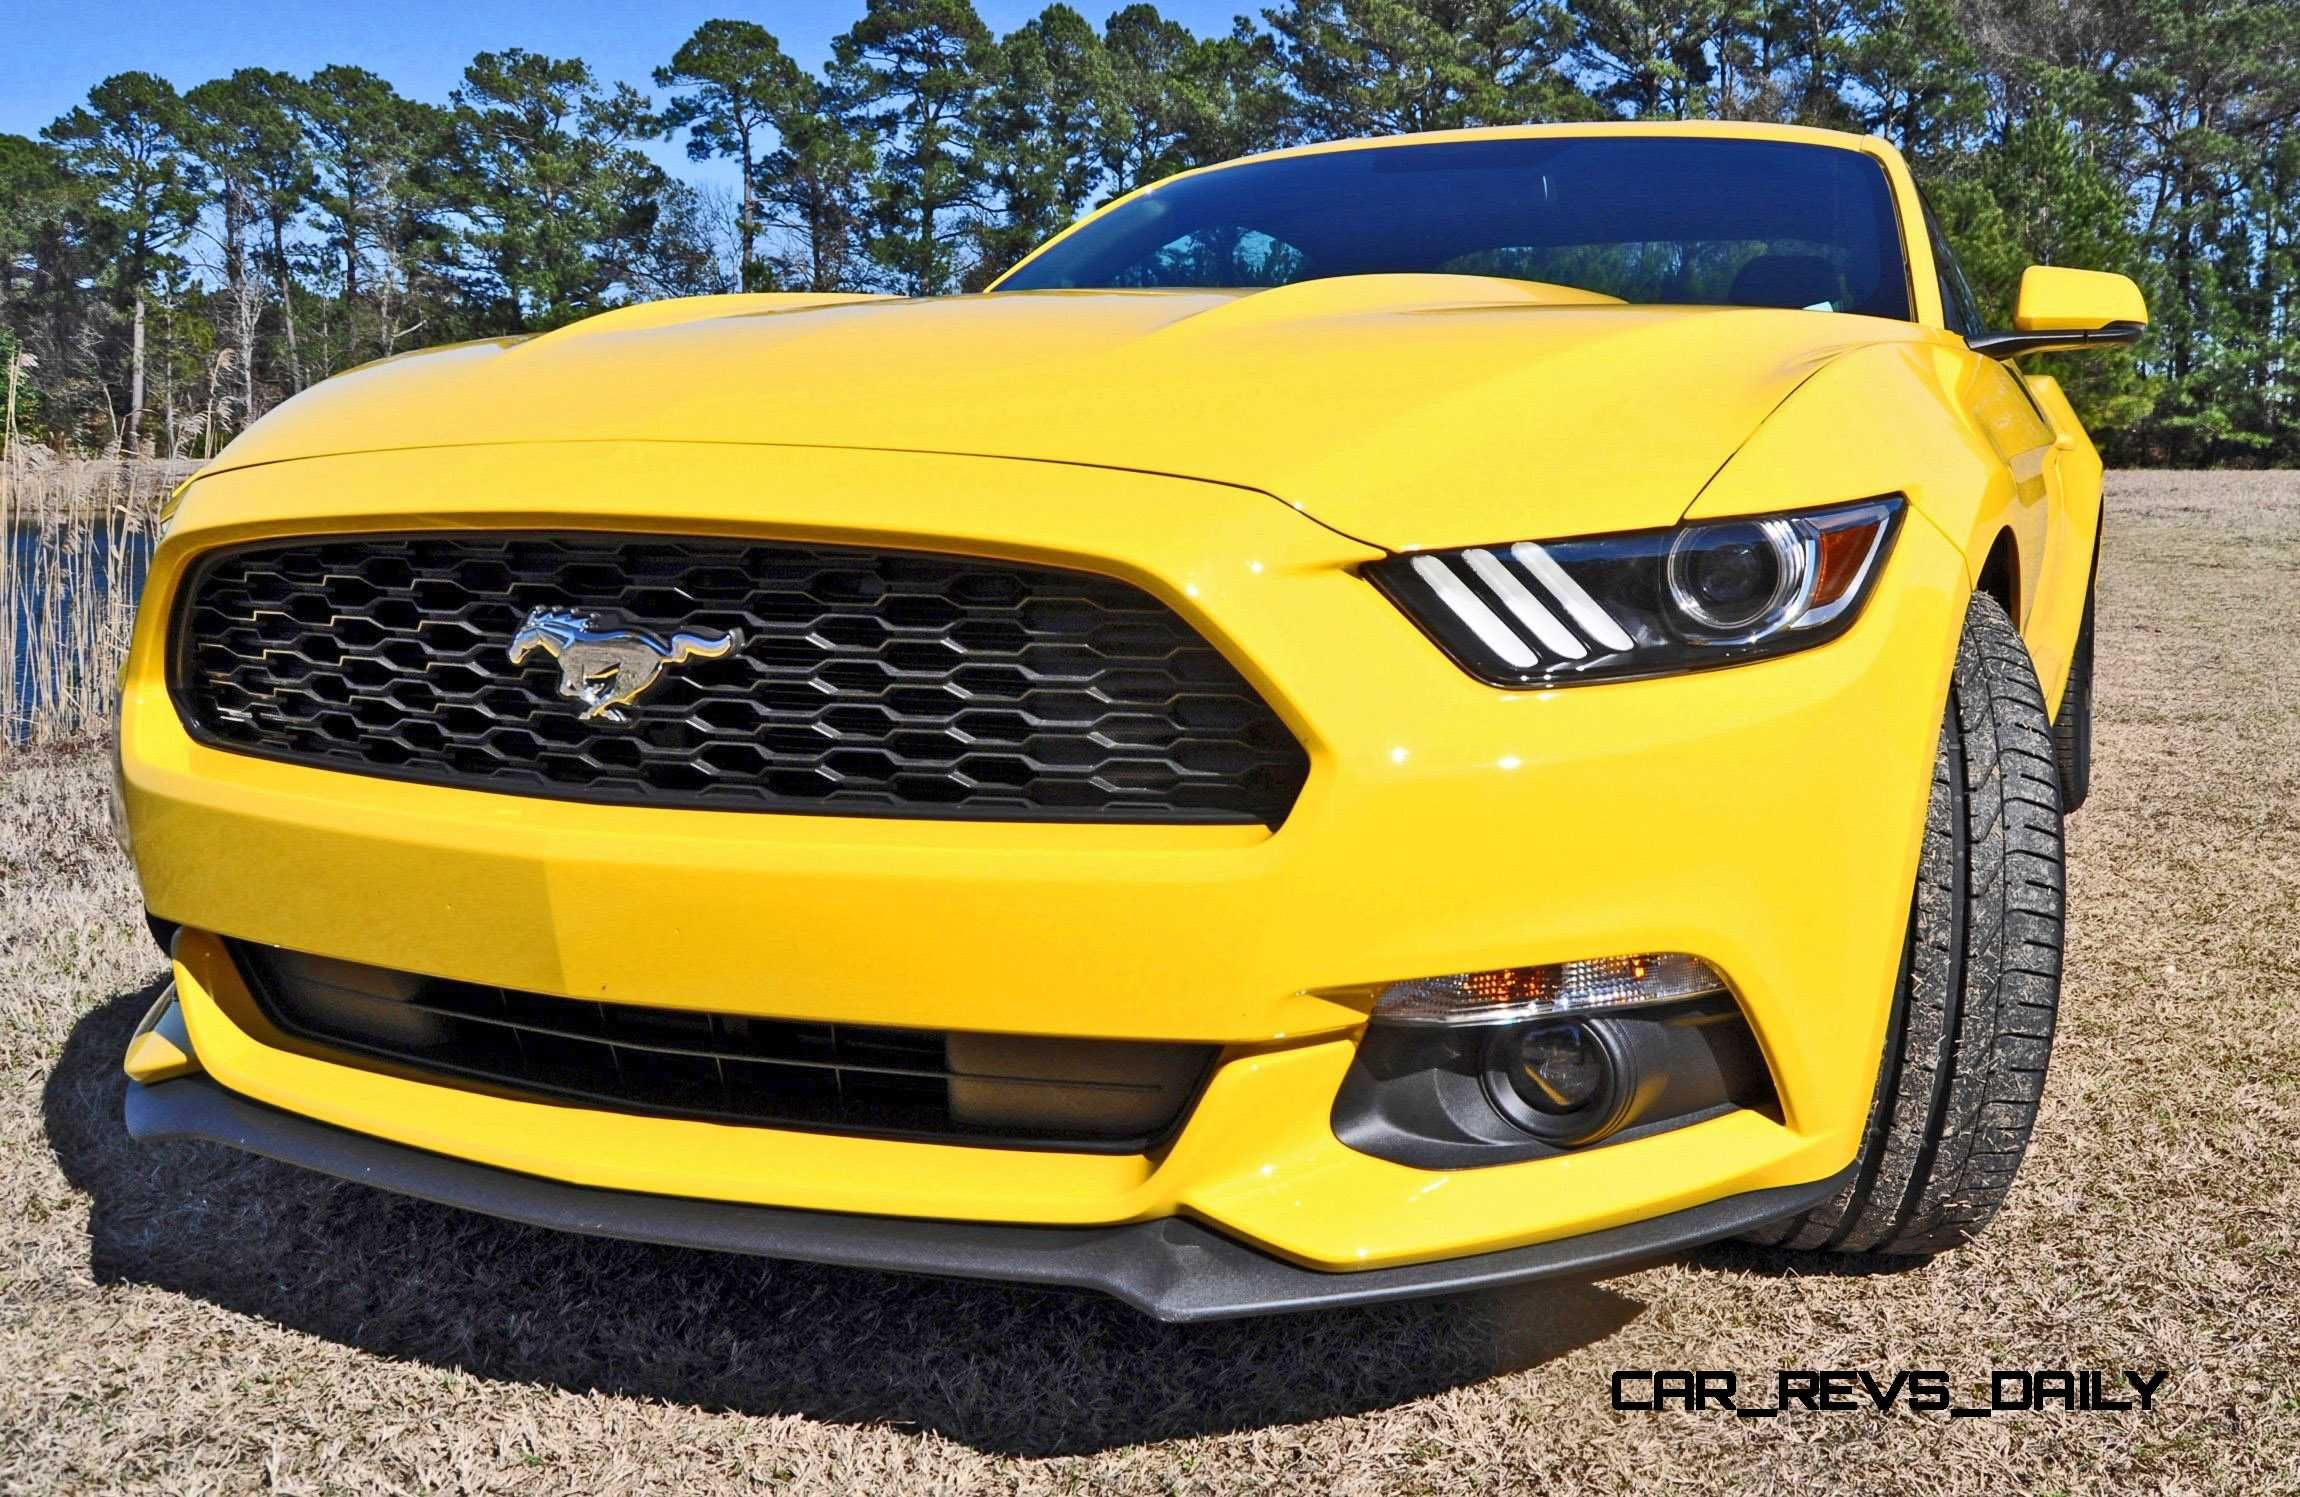 Road Test Mega Gallery – 2015 Ford Mustang EcoBoost in 2 Videos + 150 New Photos